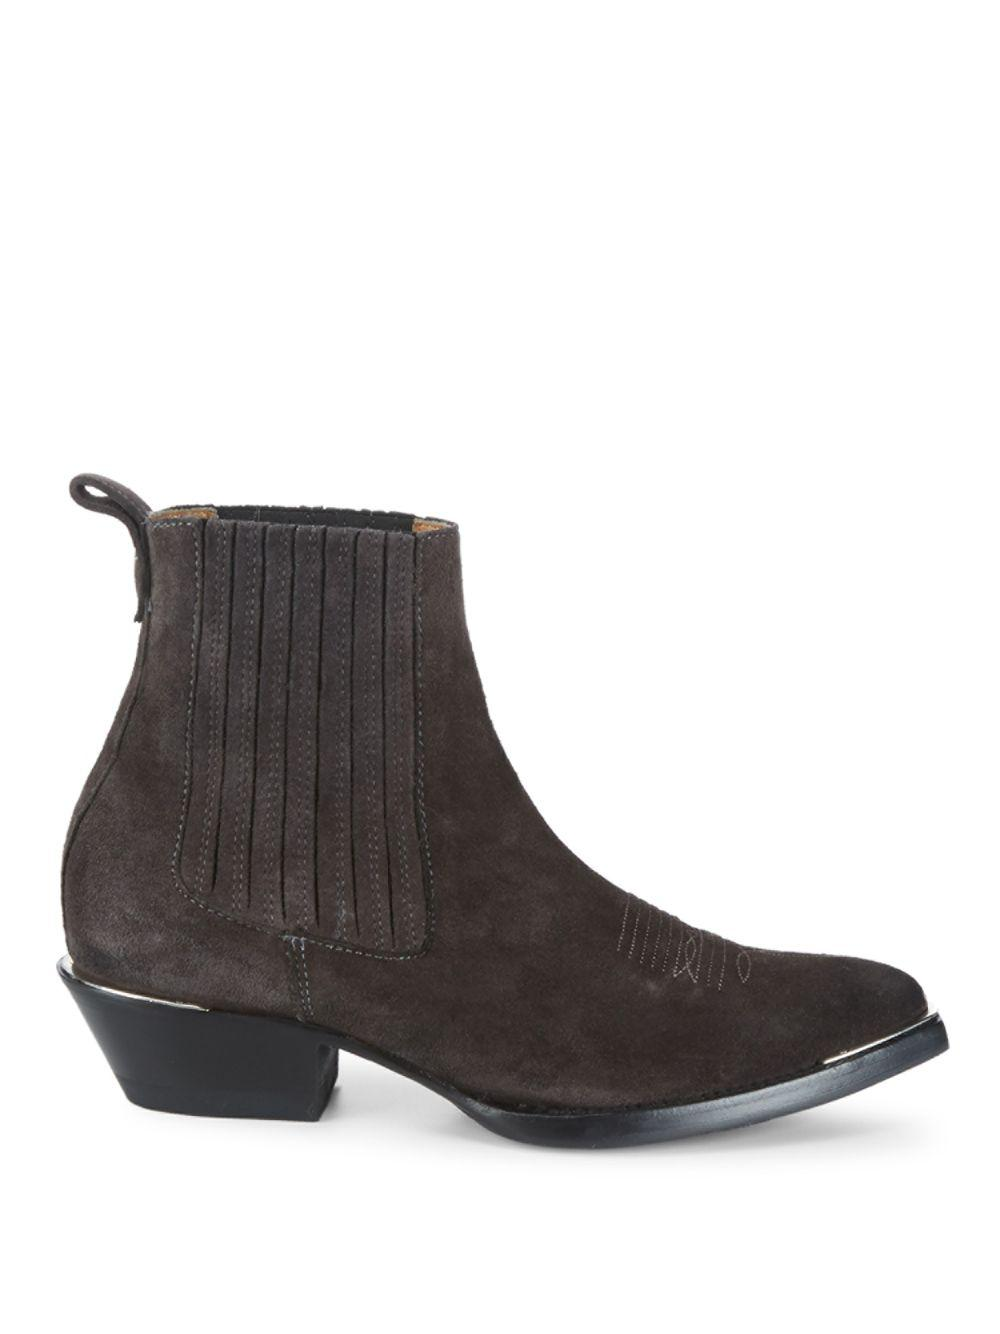 706376d2191 Ash Texas Leather Ankle Boots in Brown - Lyst